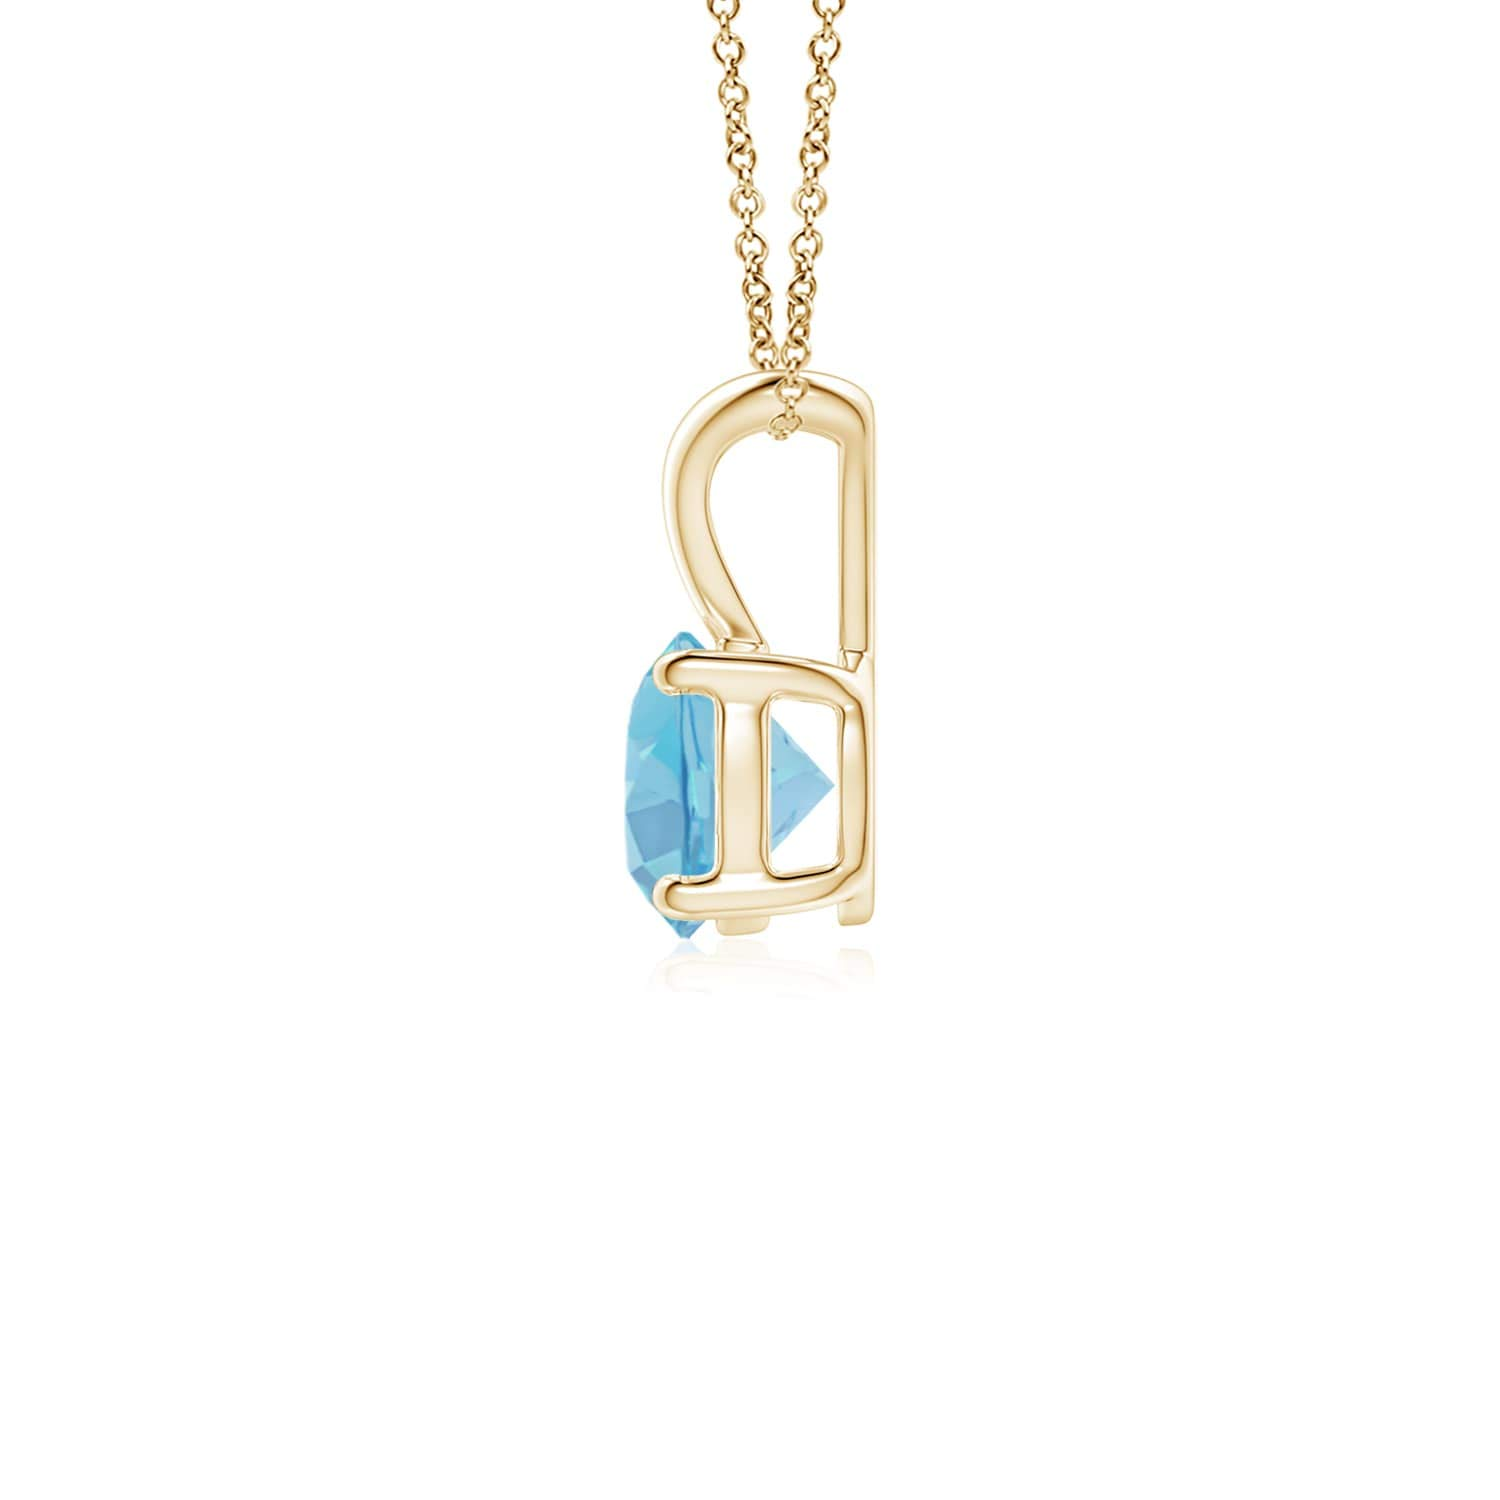 5mm Swiss Blue Topaz V-Bale Round Swiss Blue Topaz Solitaire Pendant